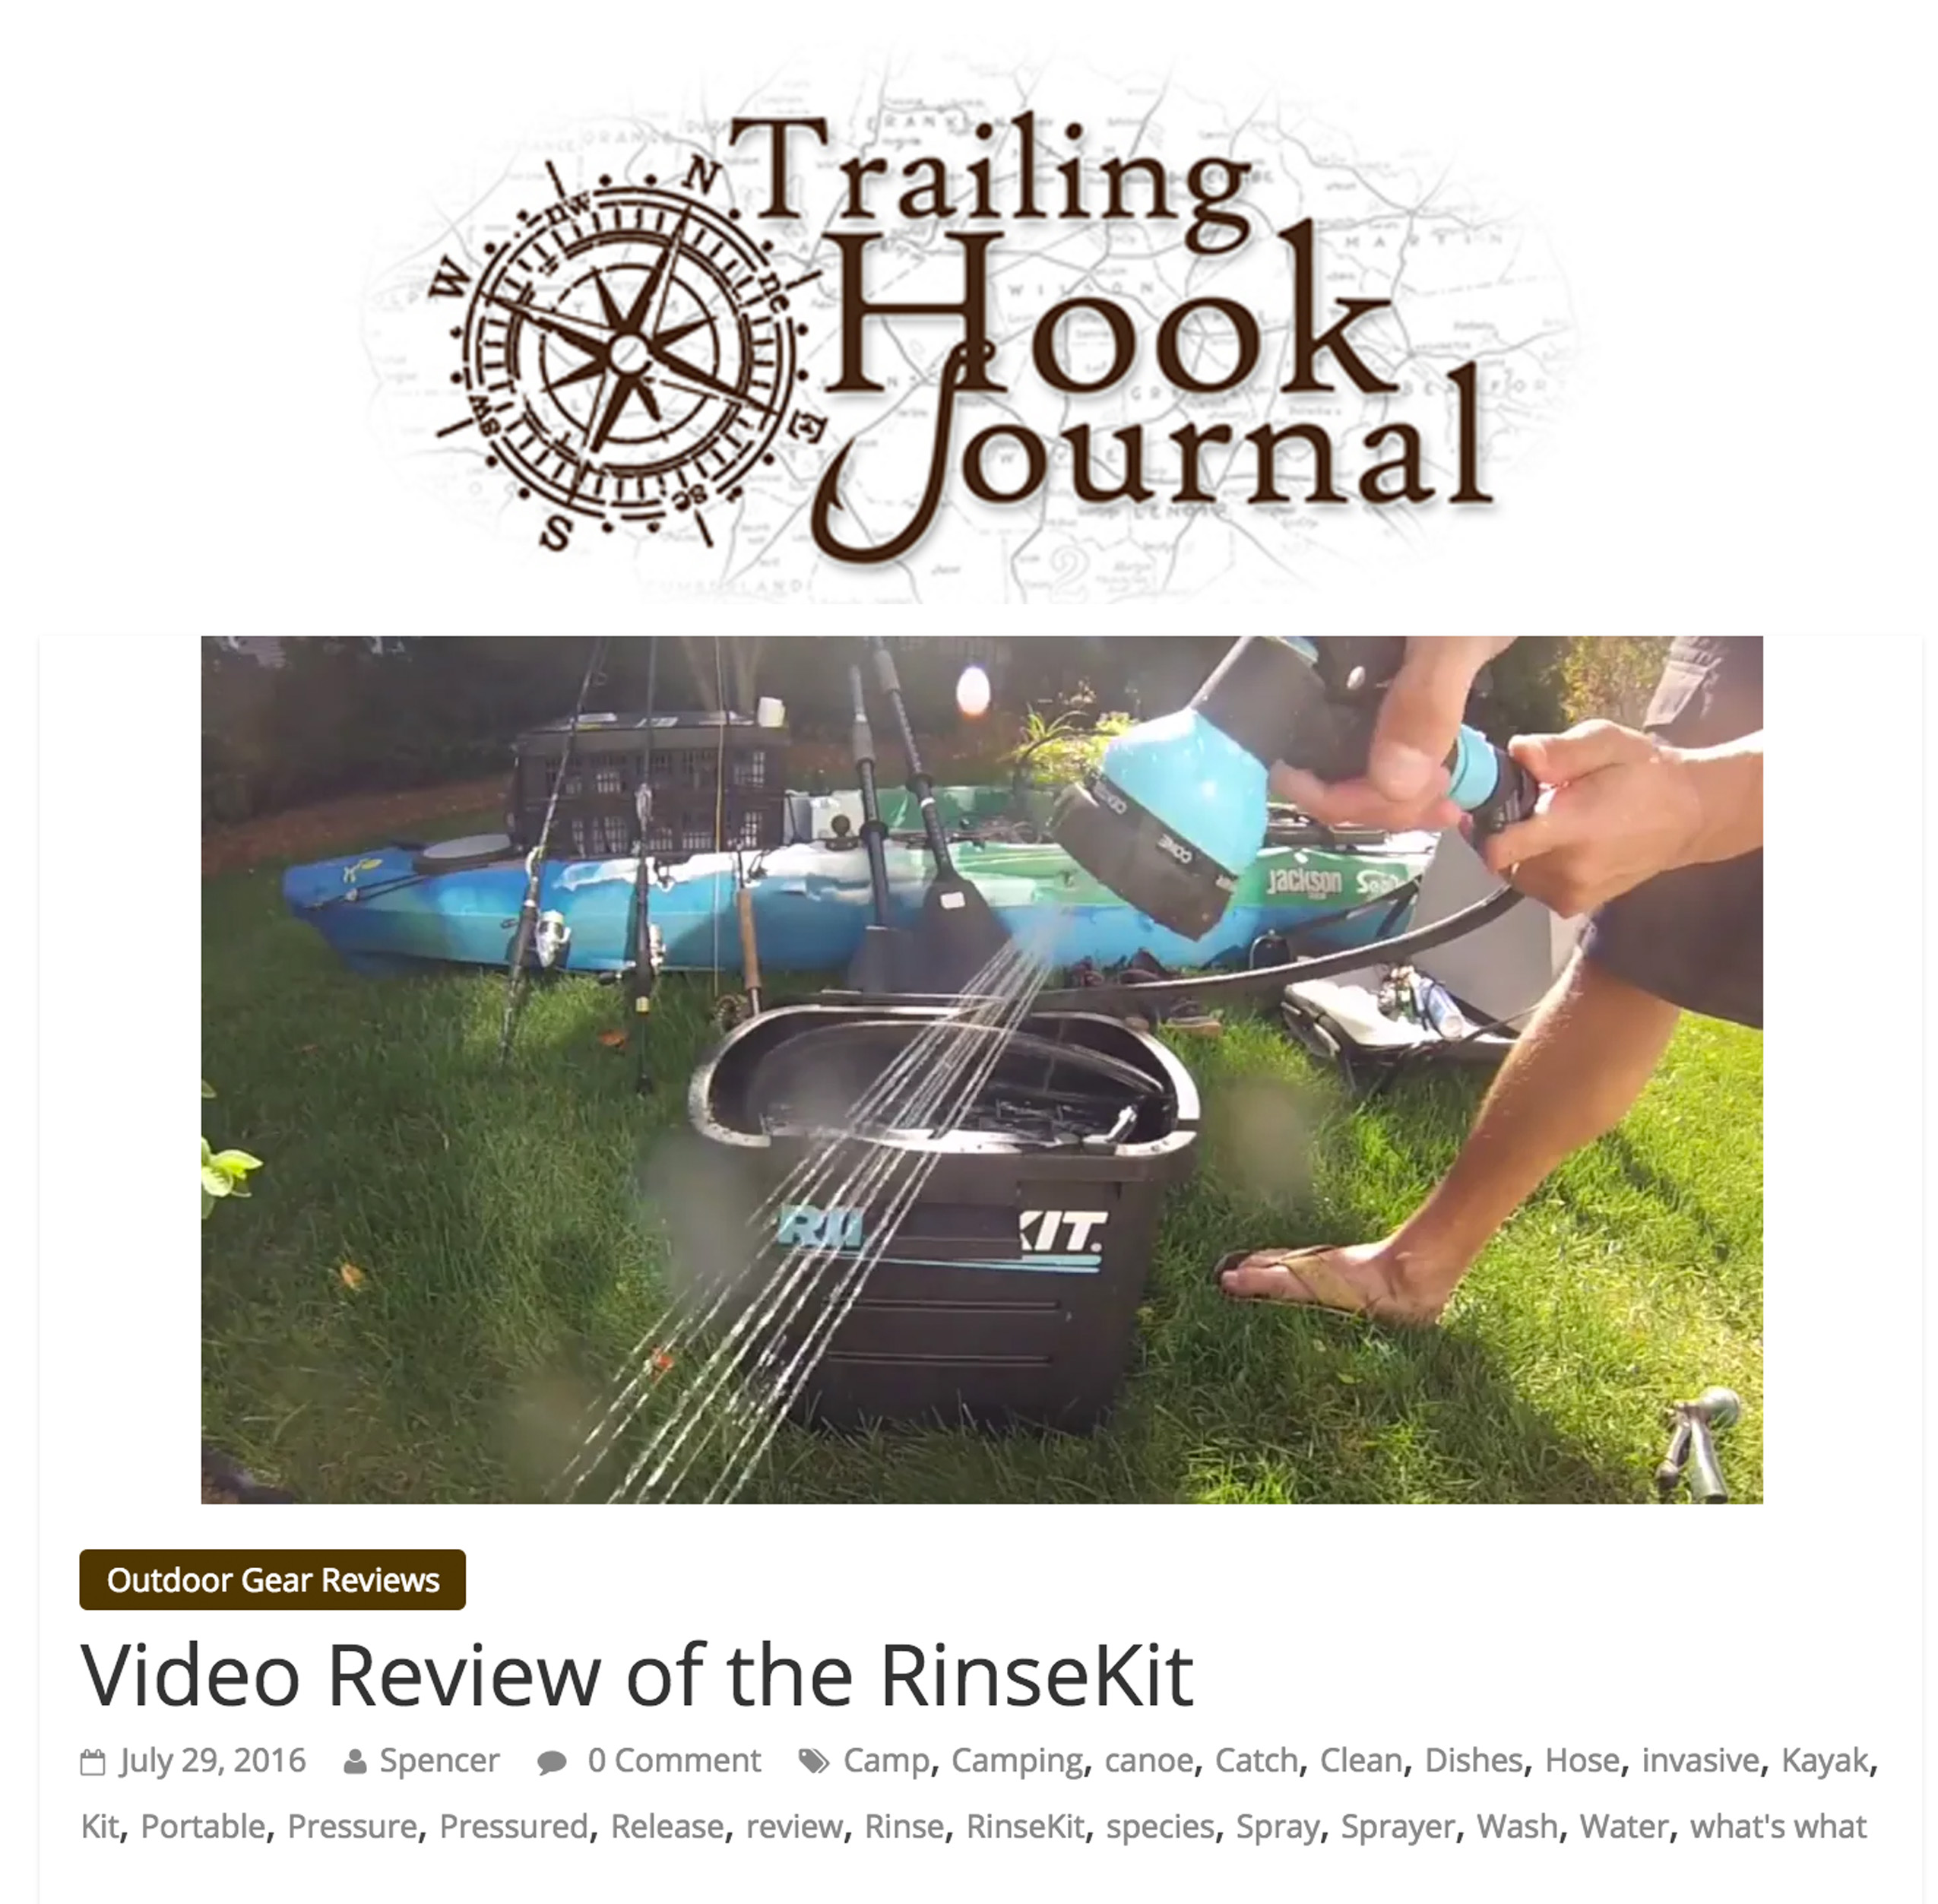 8.16.TrailingHookJournal.RinseKit.Feature